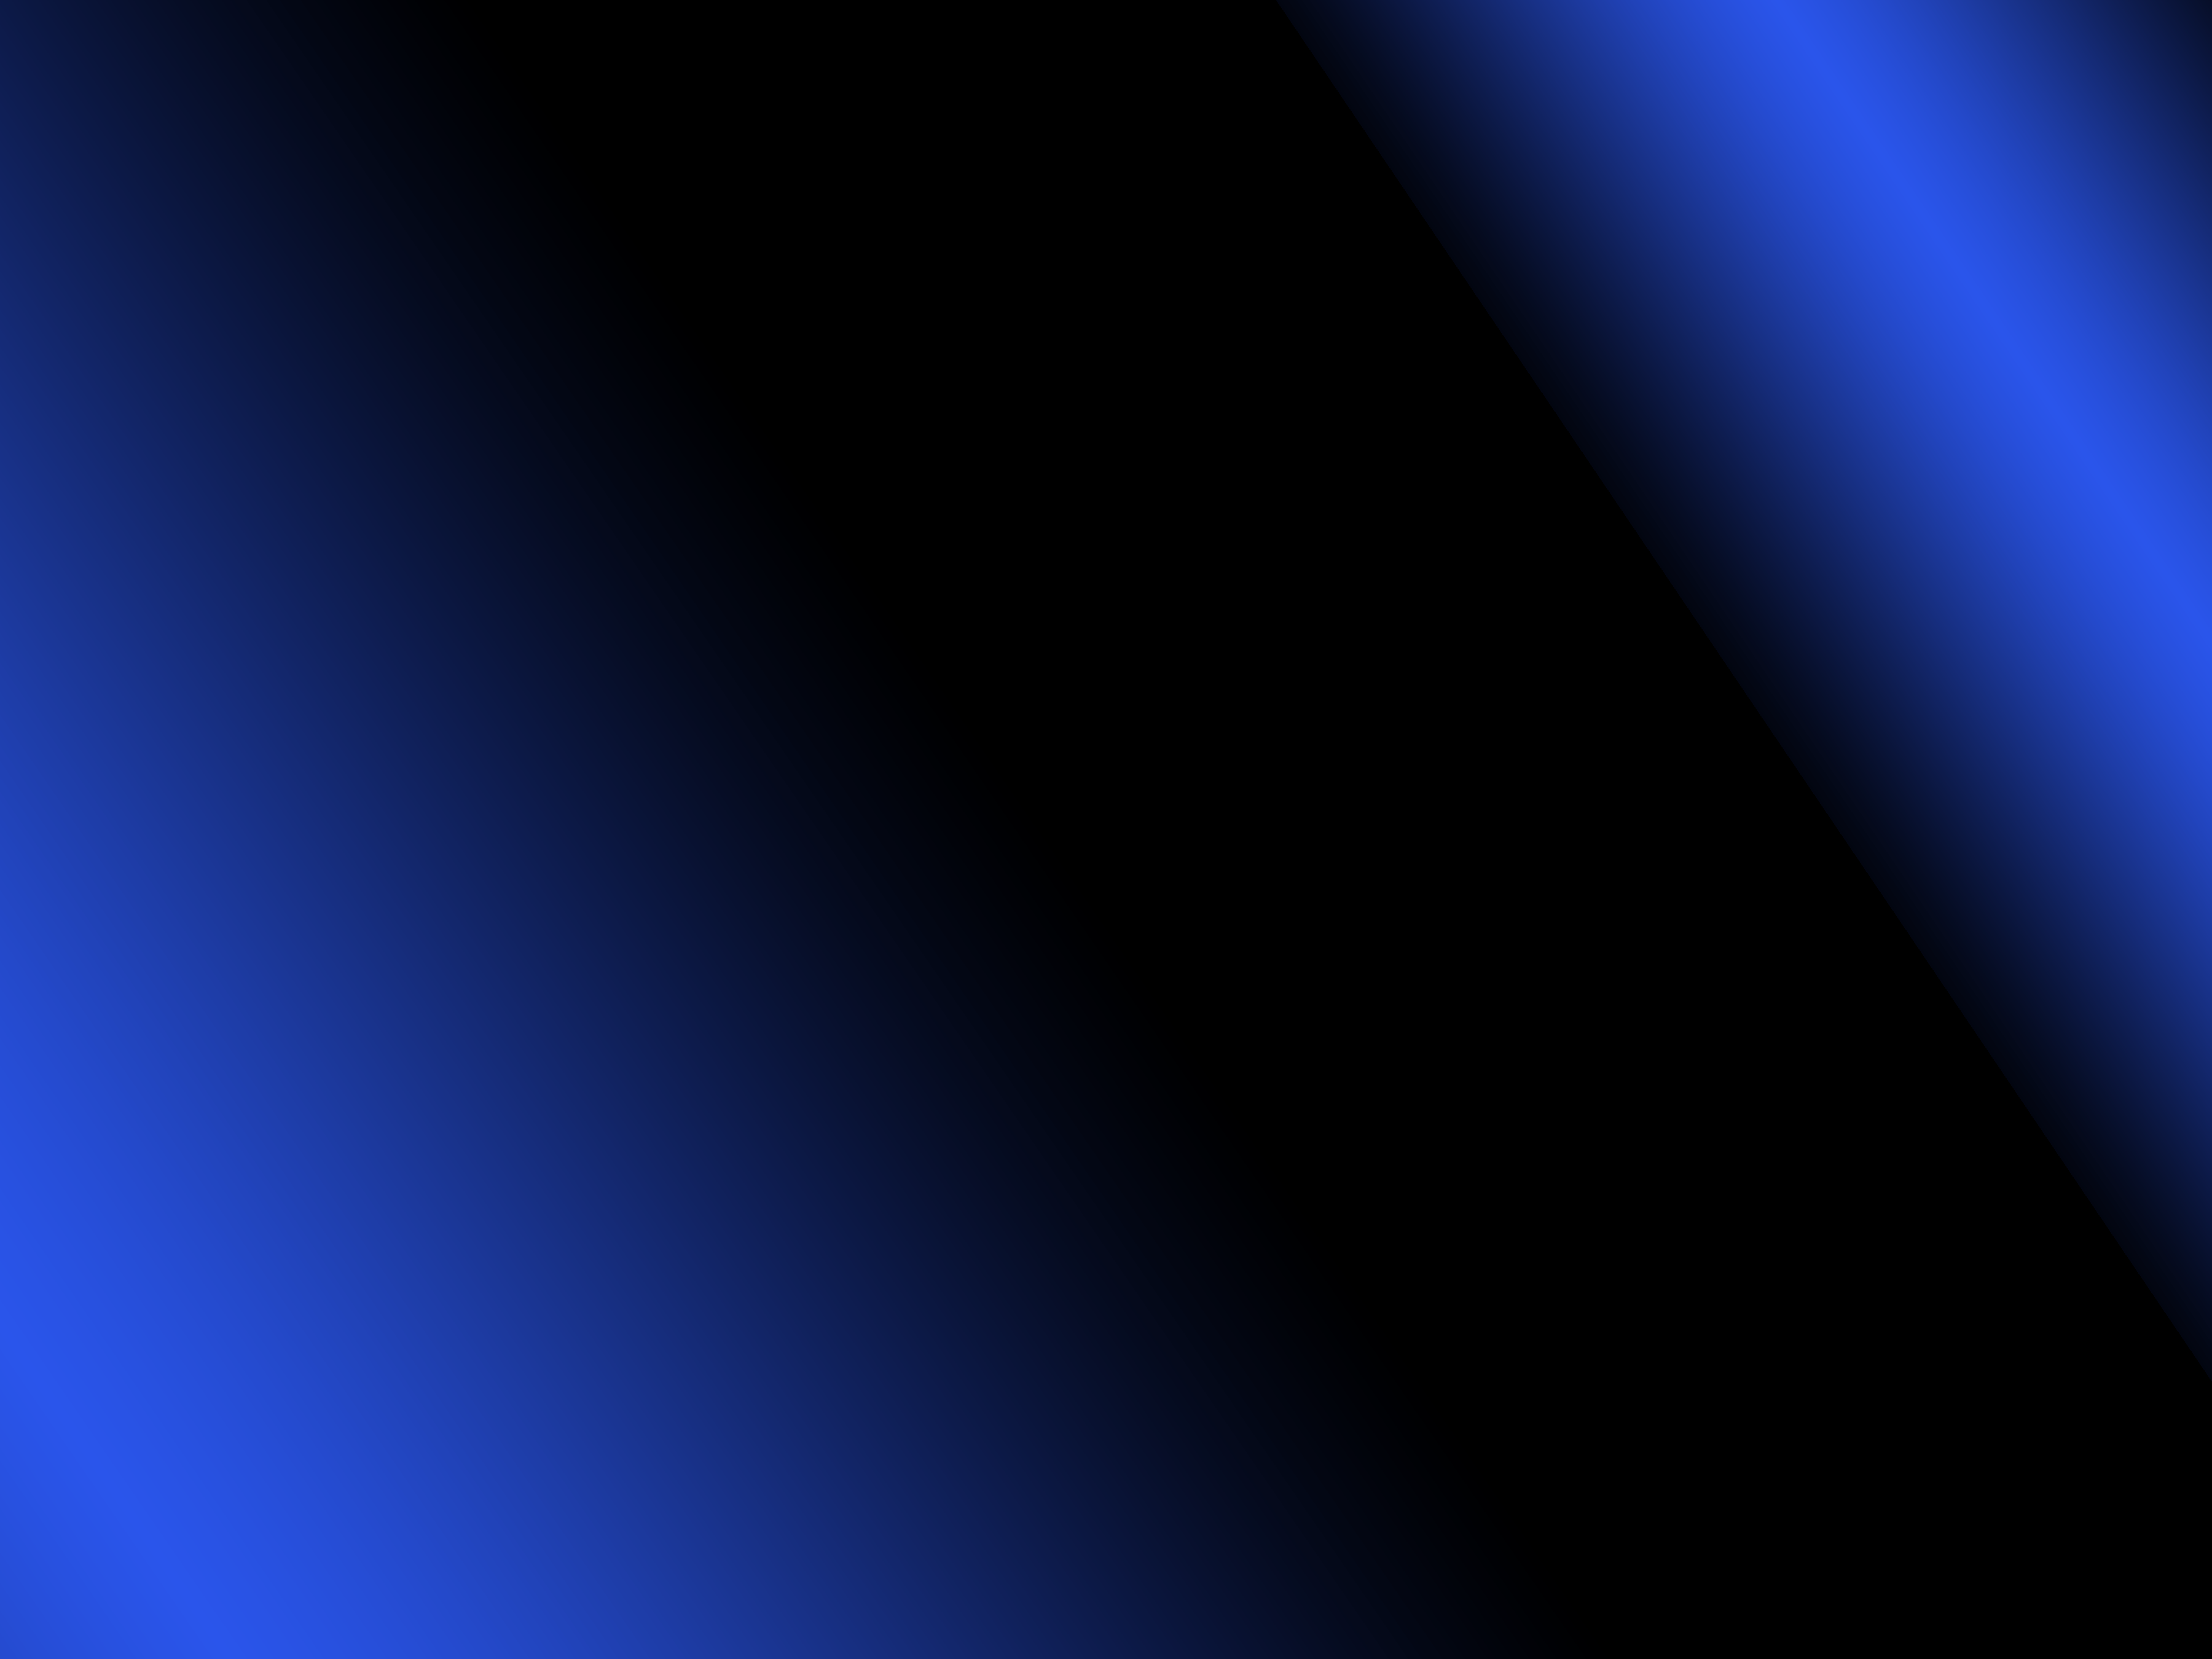 Blue Neon Backgrounds 3600x2700